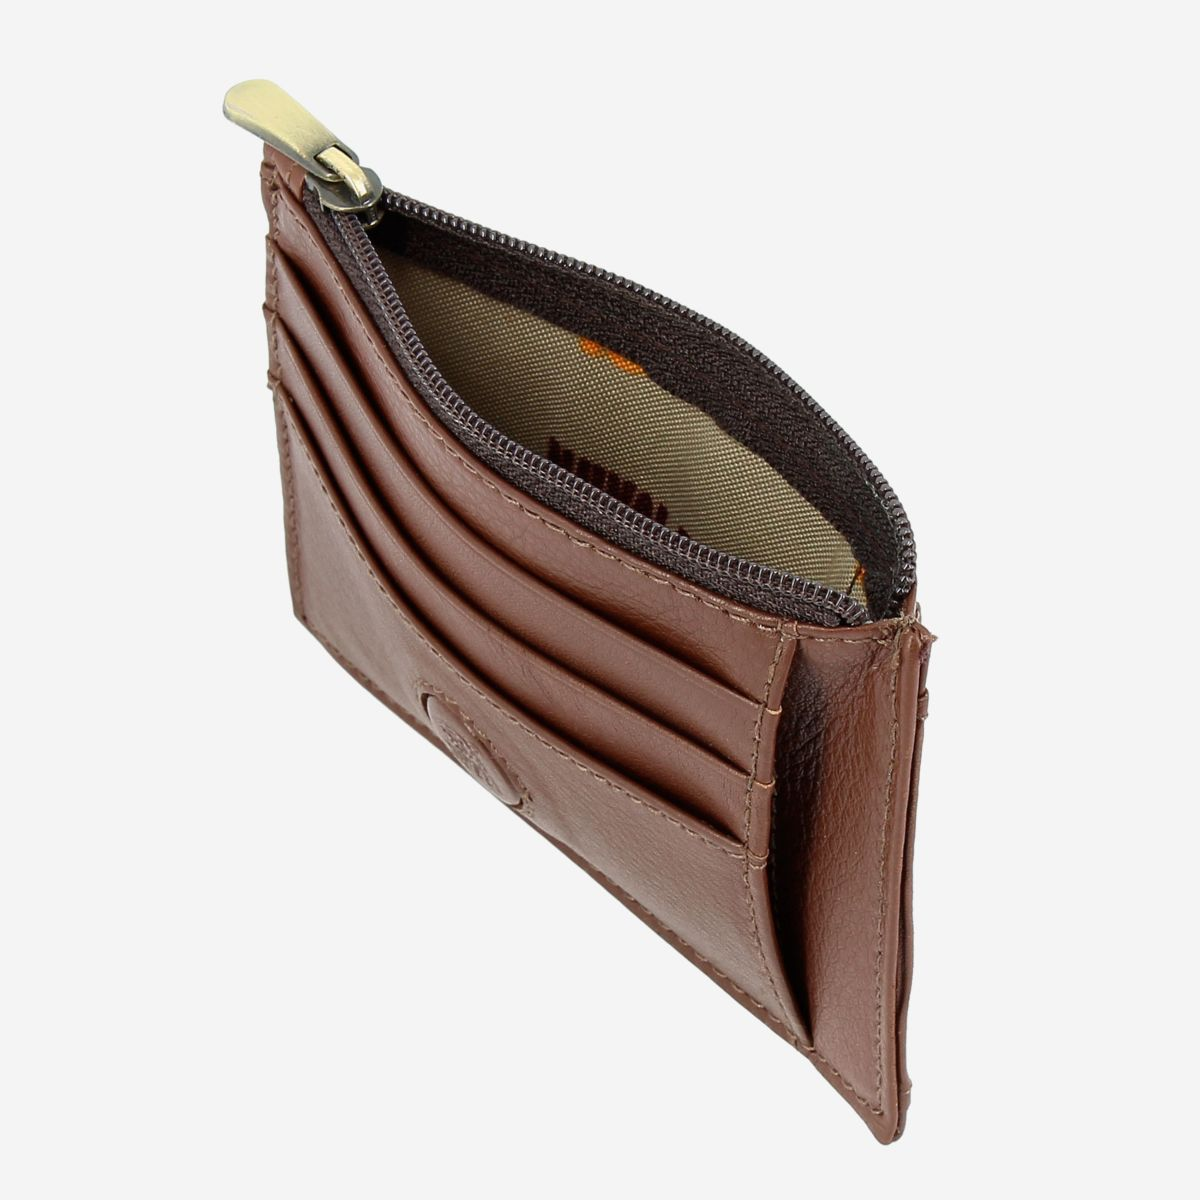 NUVOLA PELLE Slim Leather Credit Card Wallet - Dark Brown